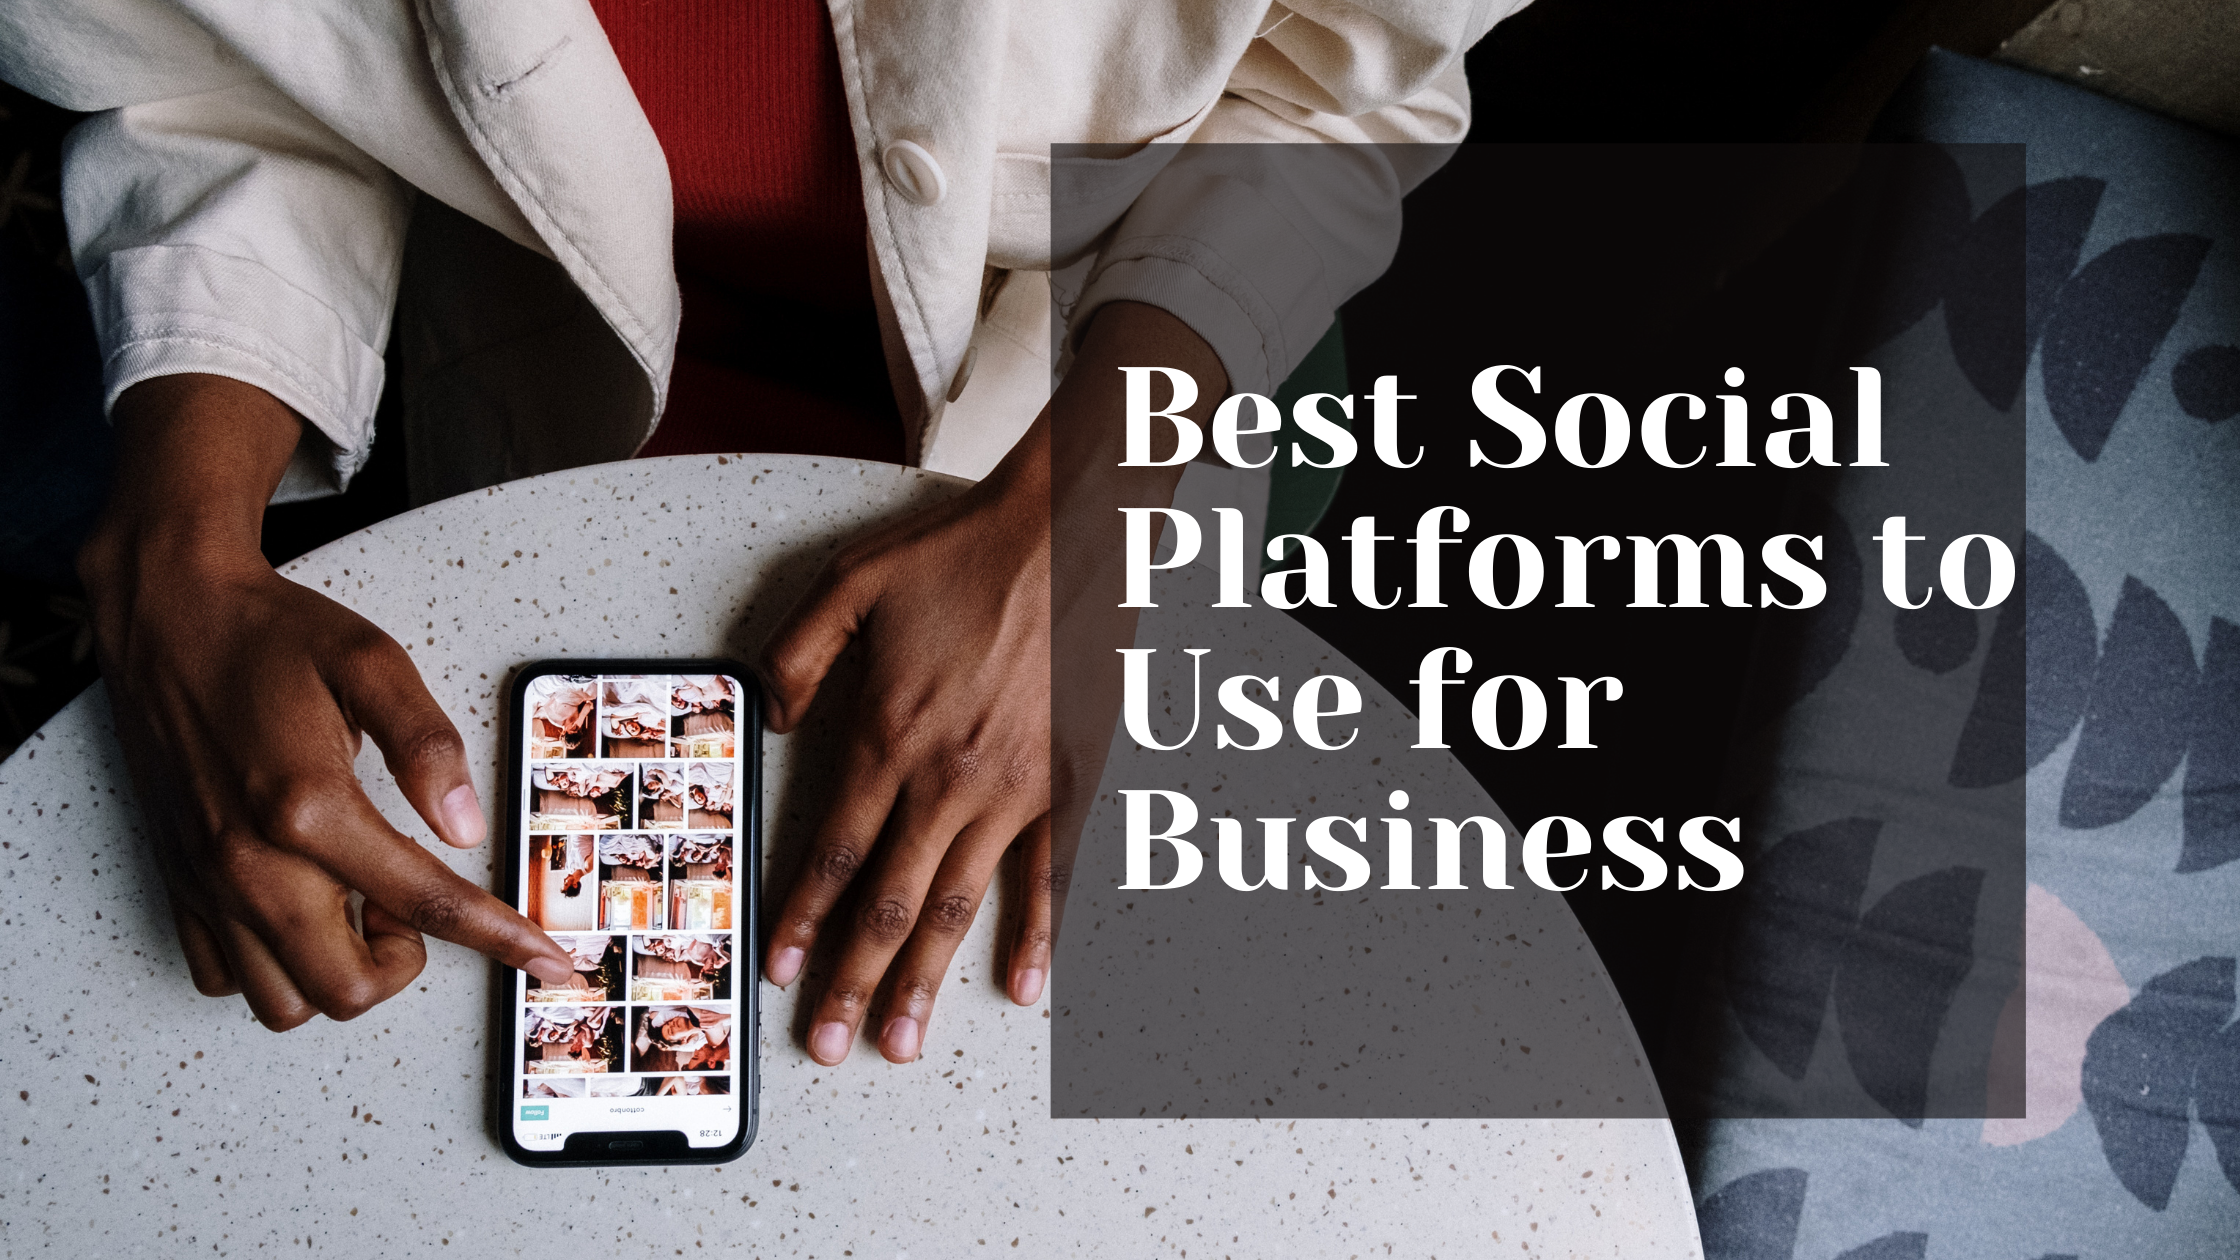 Best social platforms to use for business